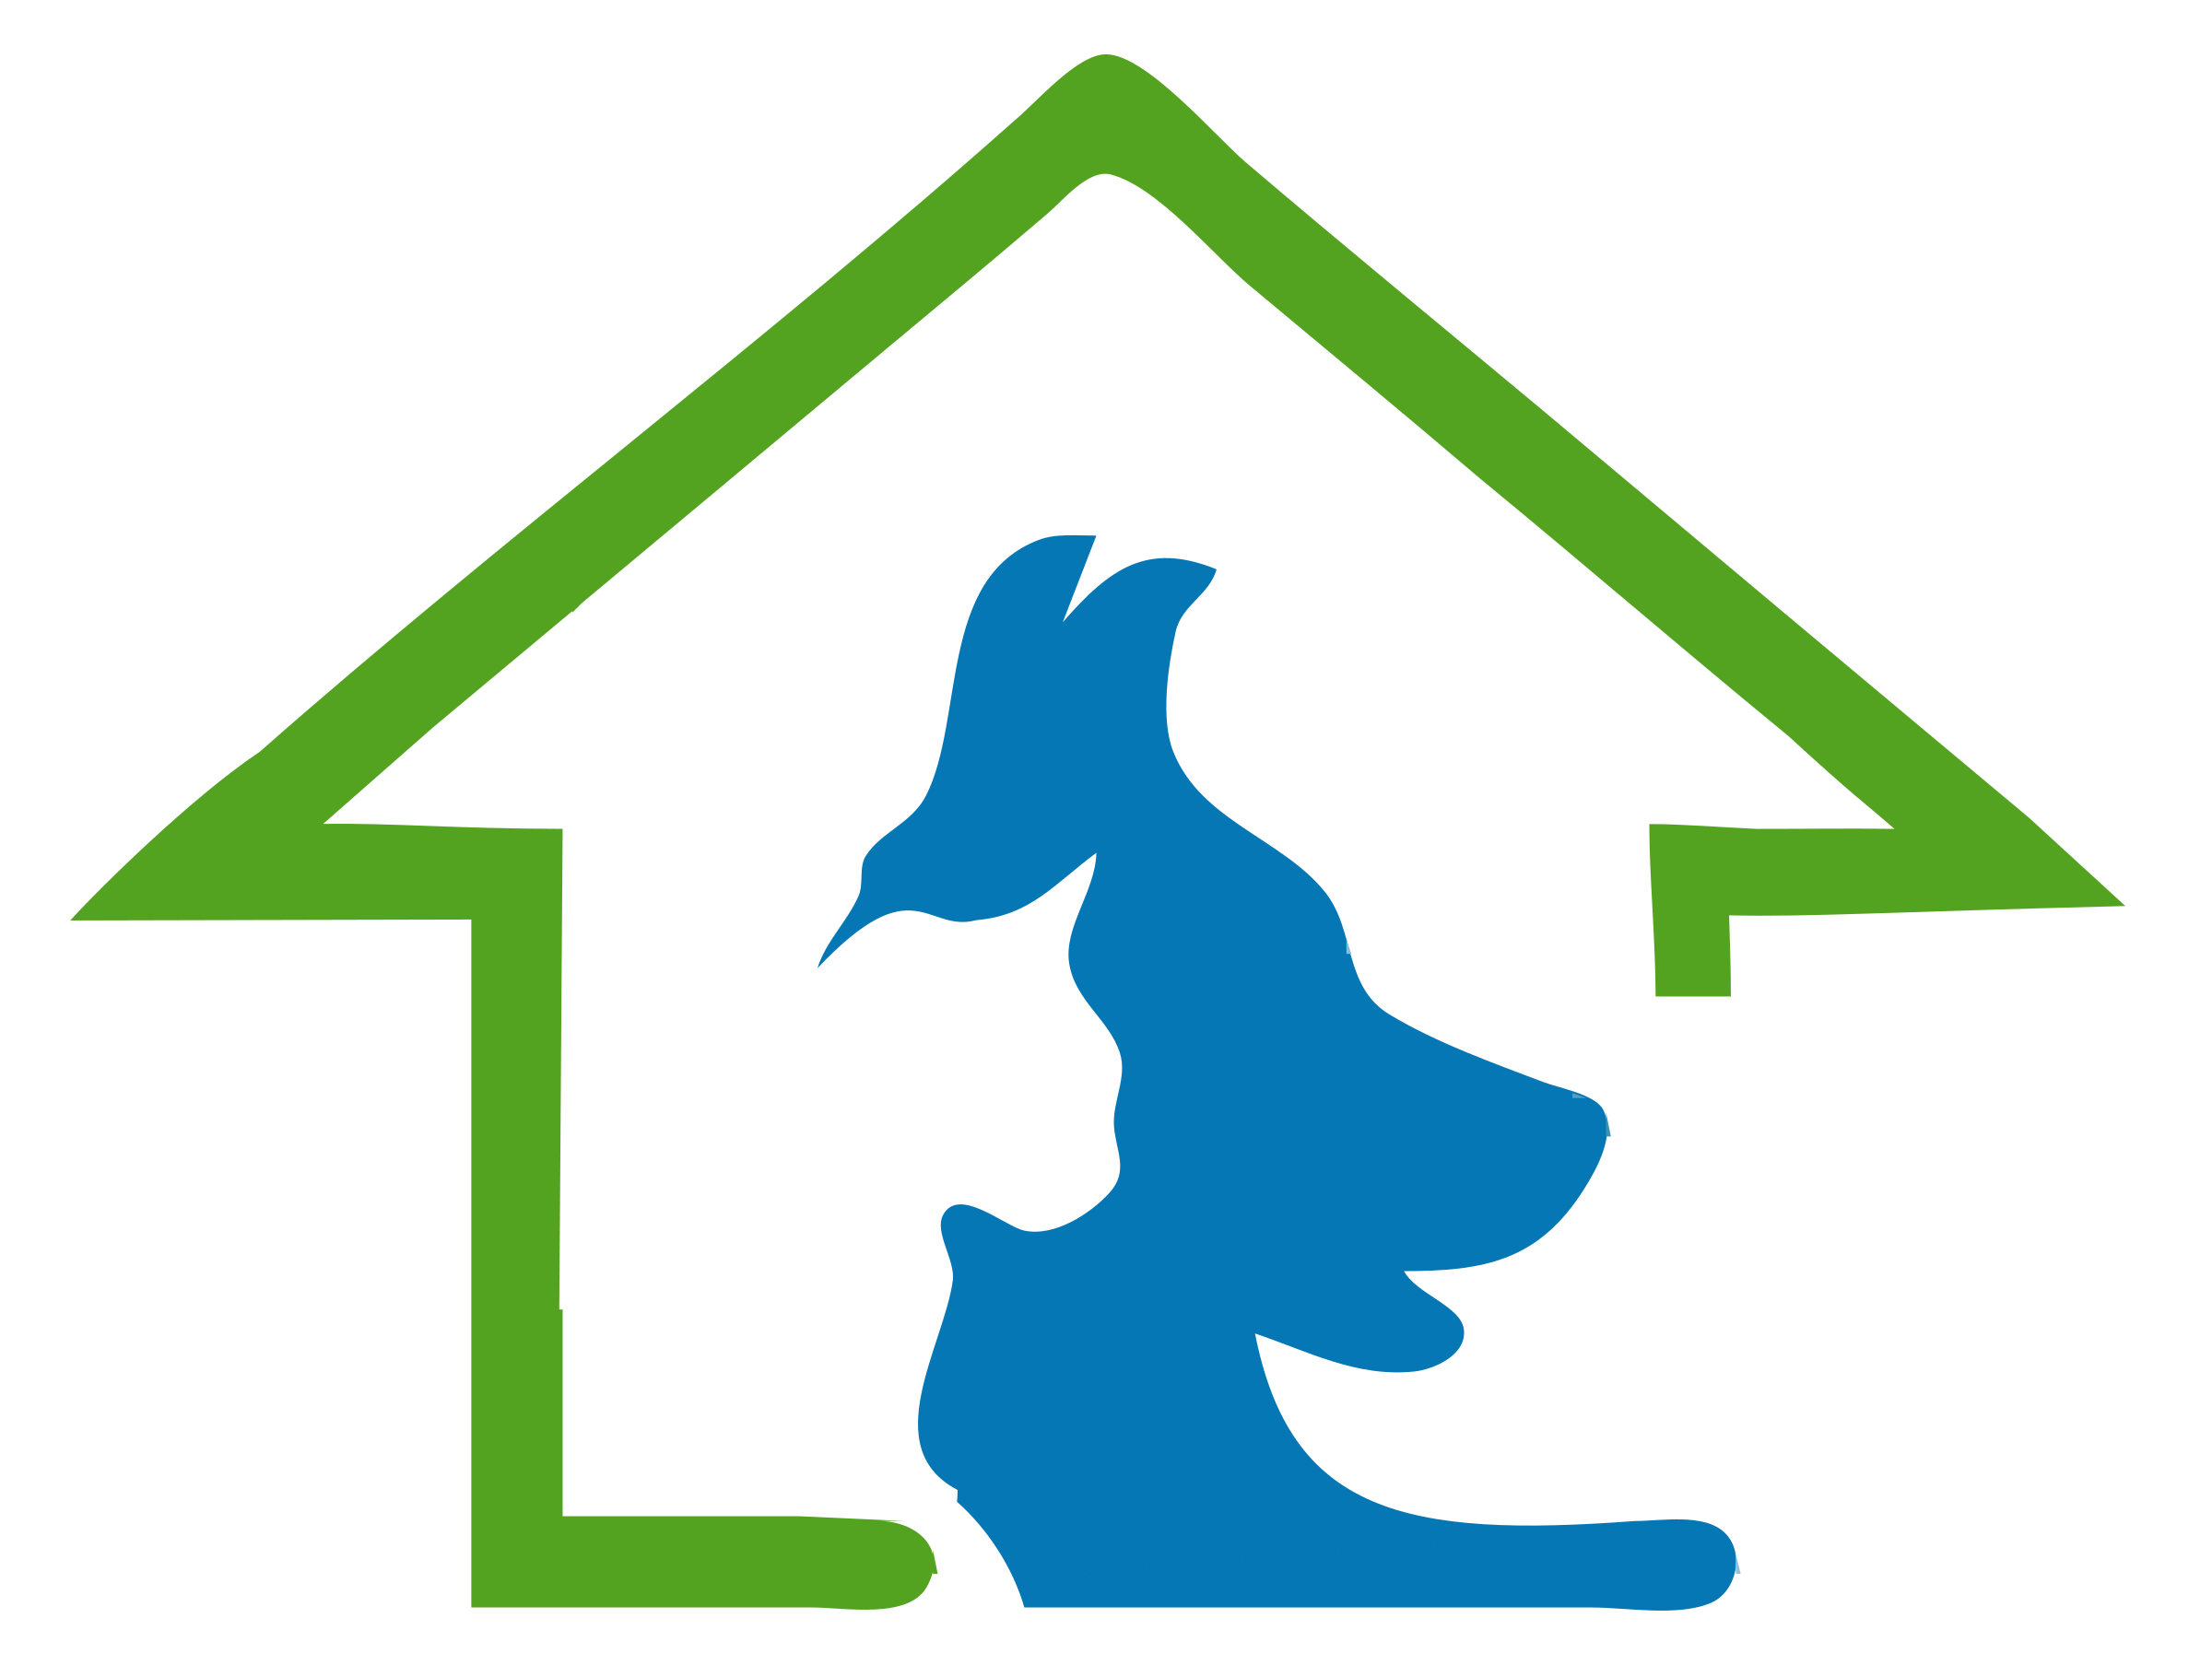 House logo clipart banner freeuse Clipart - Dog and Cat House banner freeuse